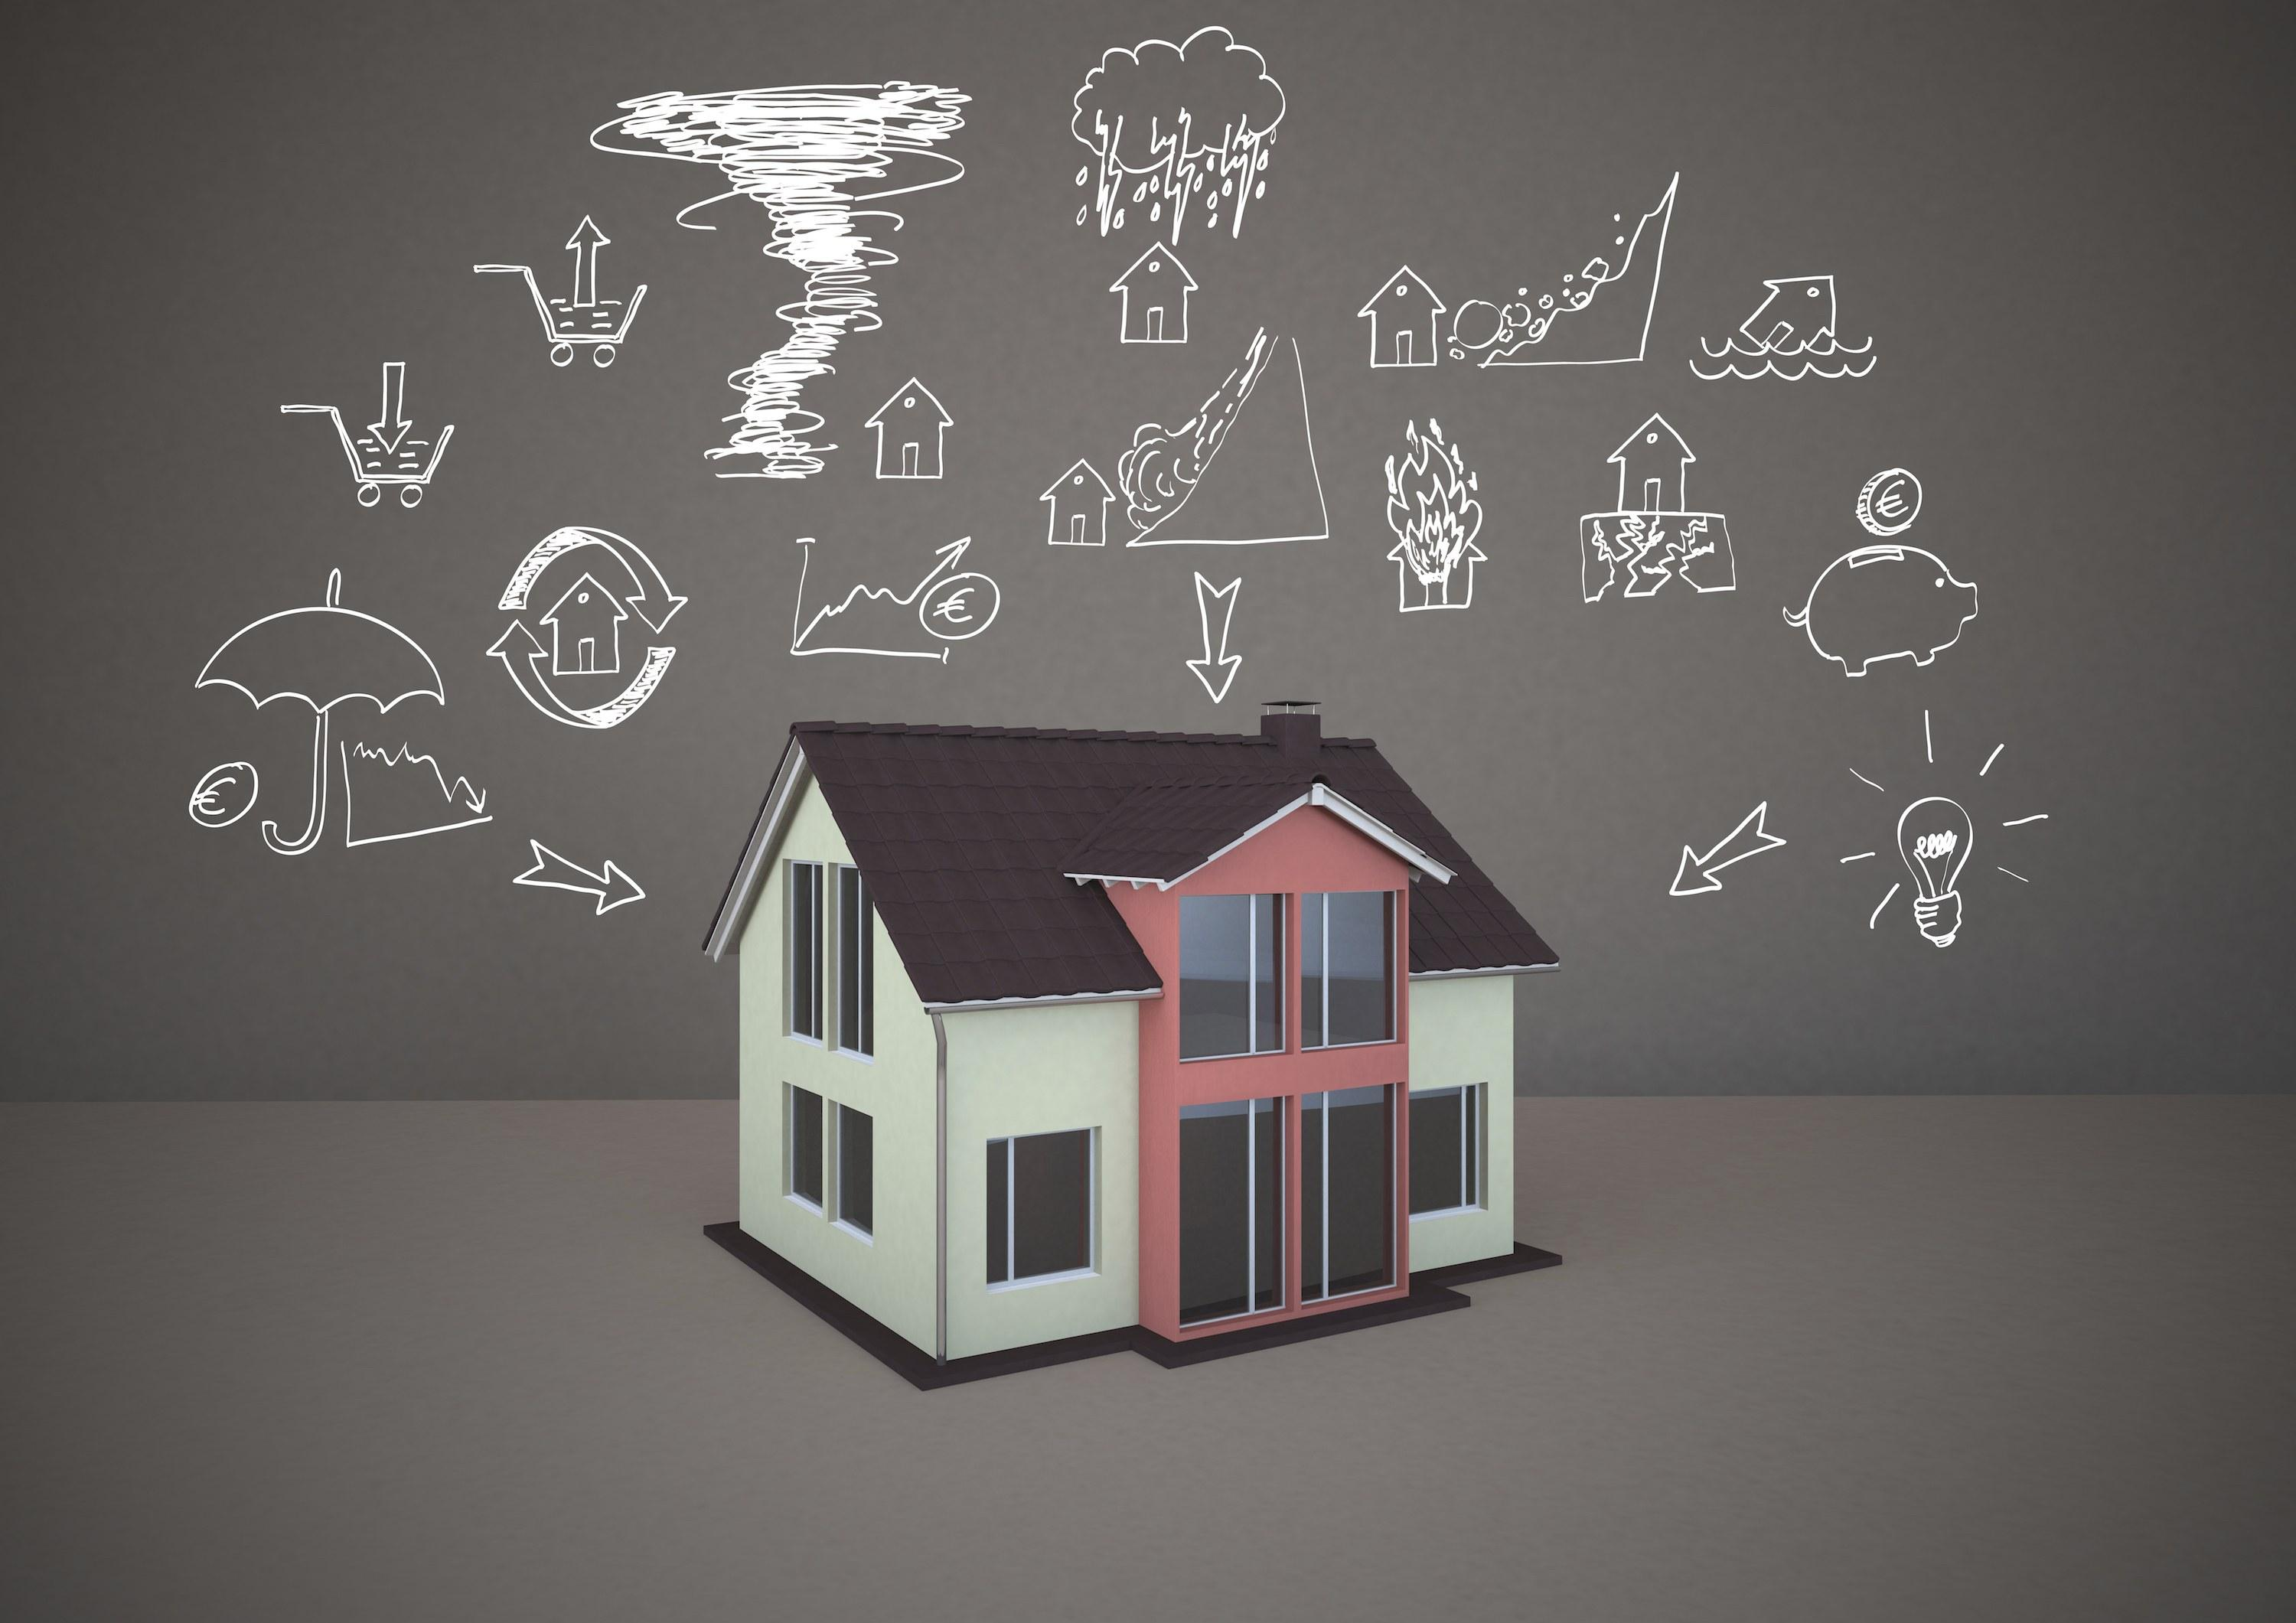 Homeowners Insurance Not Just For Homeowners